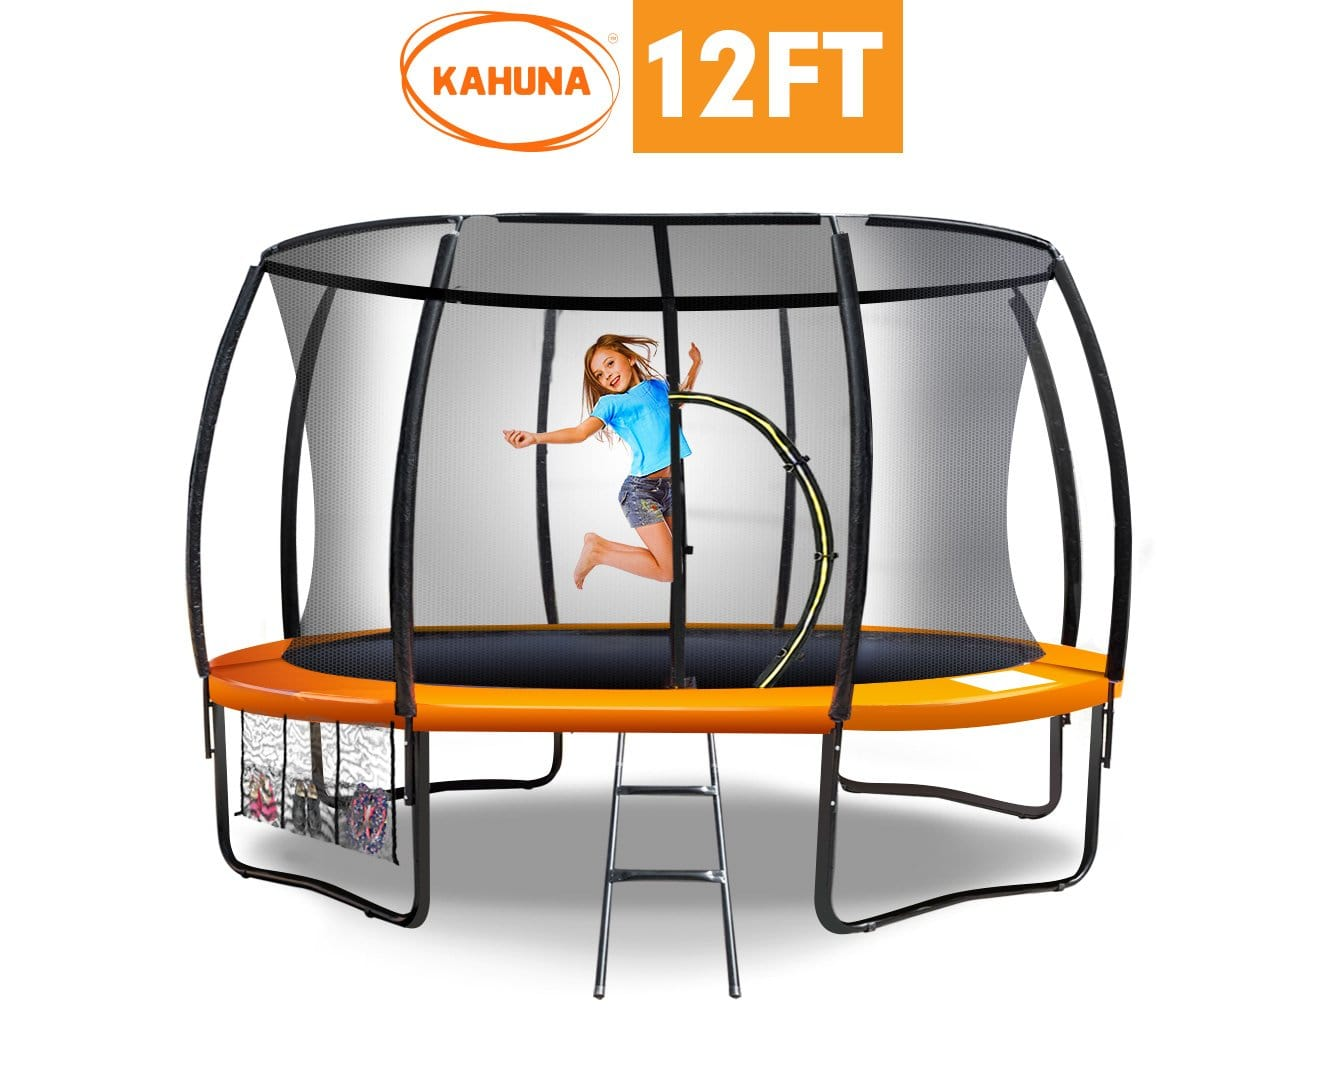 Trampoline Kahuna 12 ft Round Outdoor Kids with Safety Enclosure Net